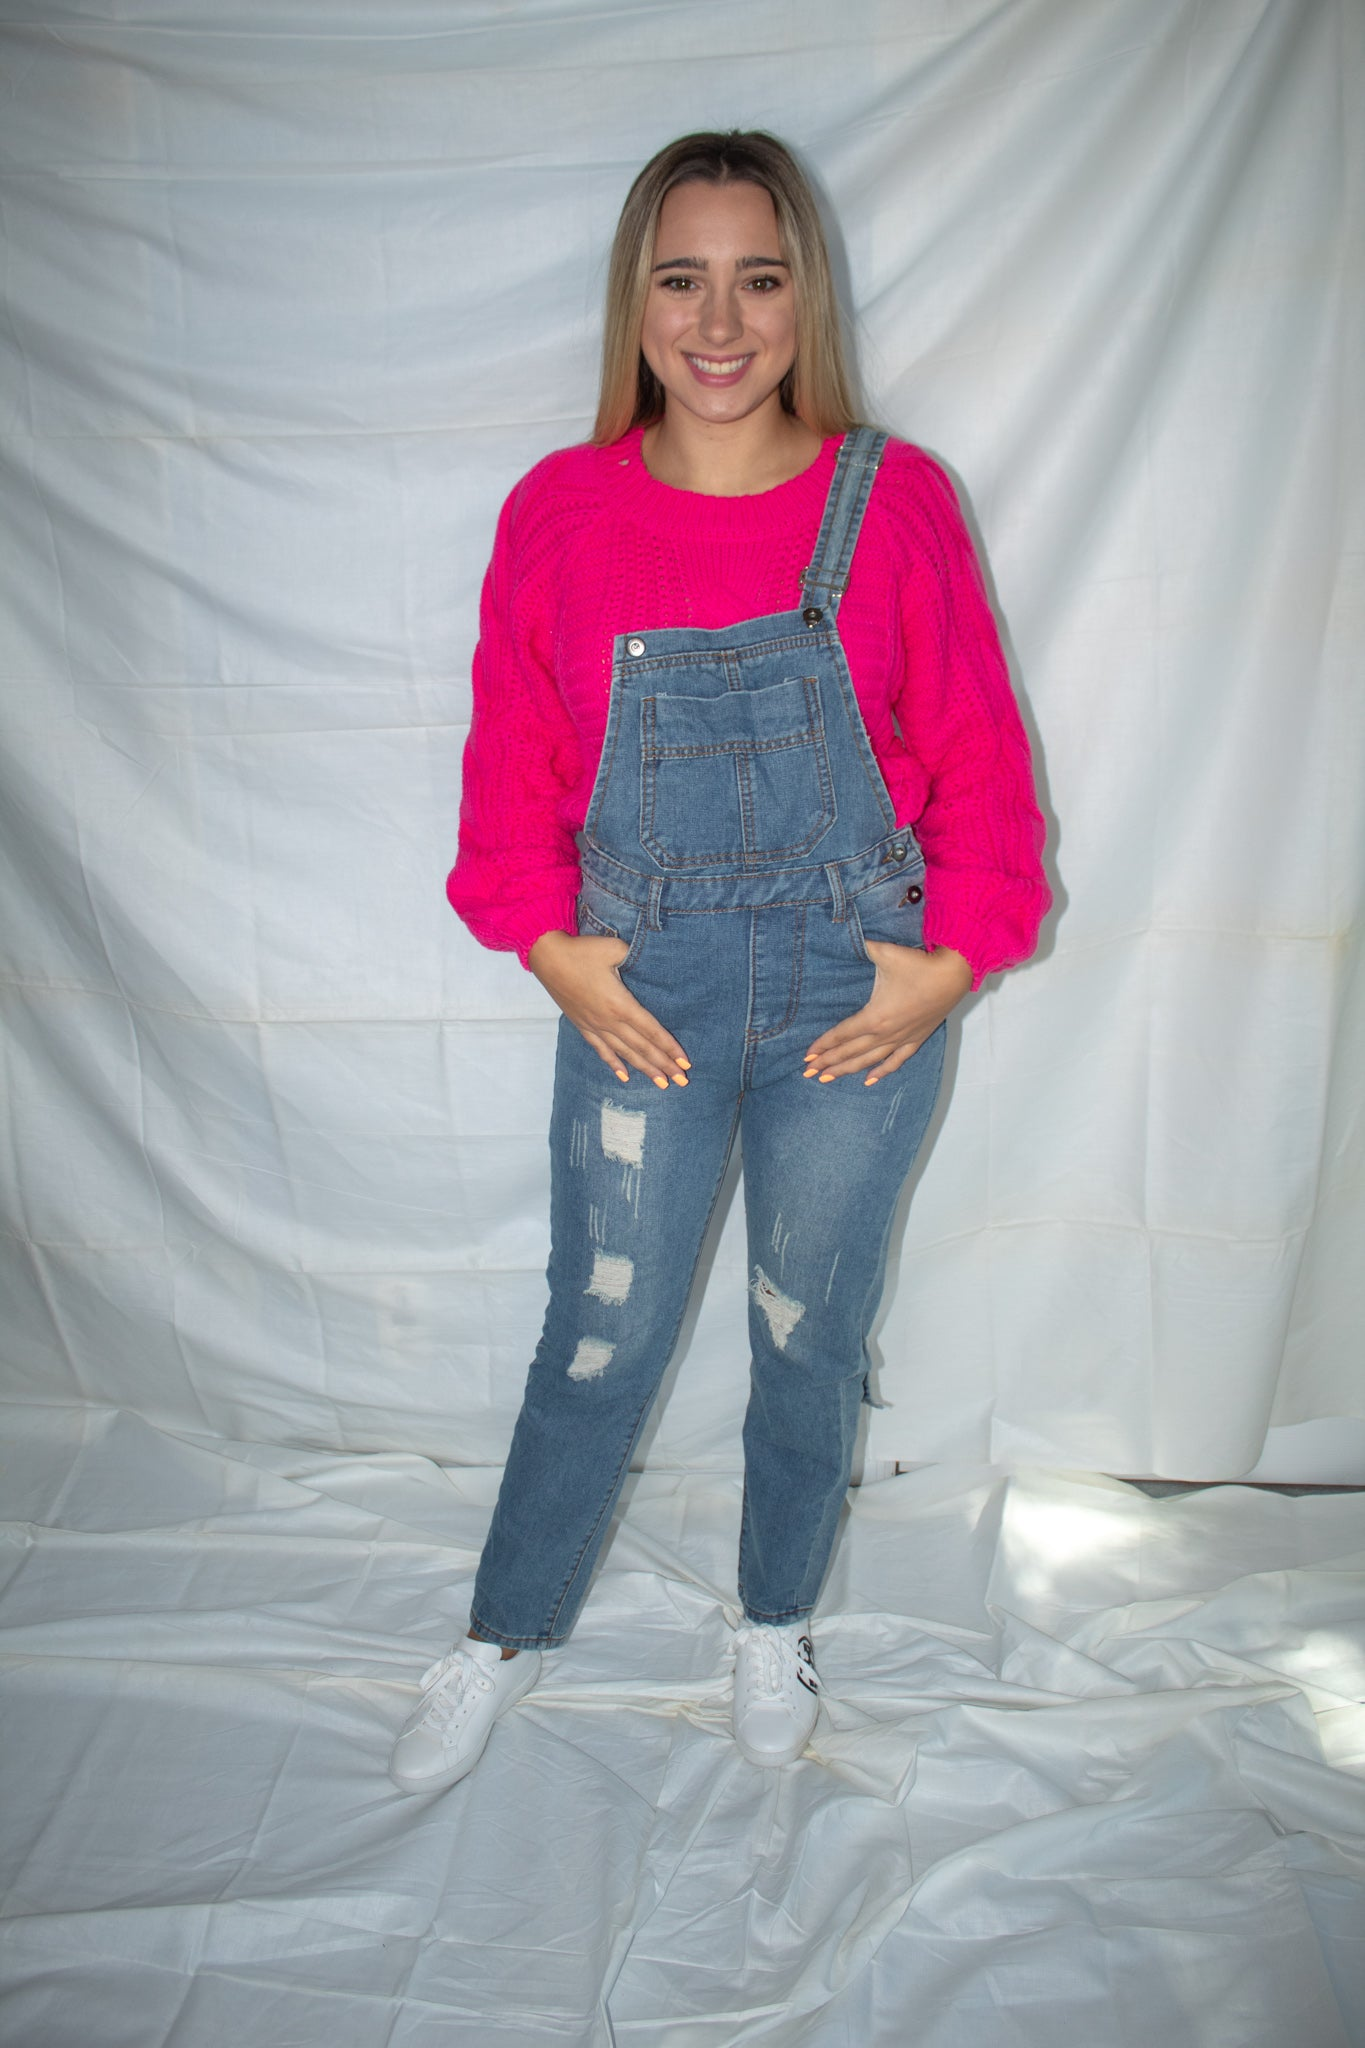 The Sussex Overalls